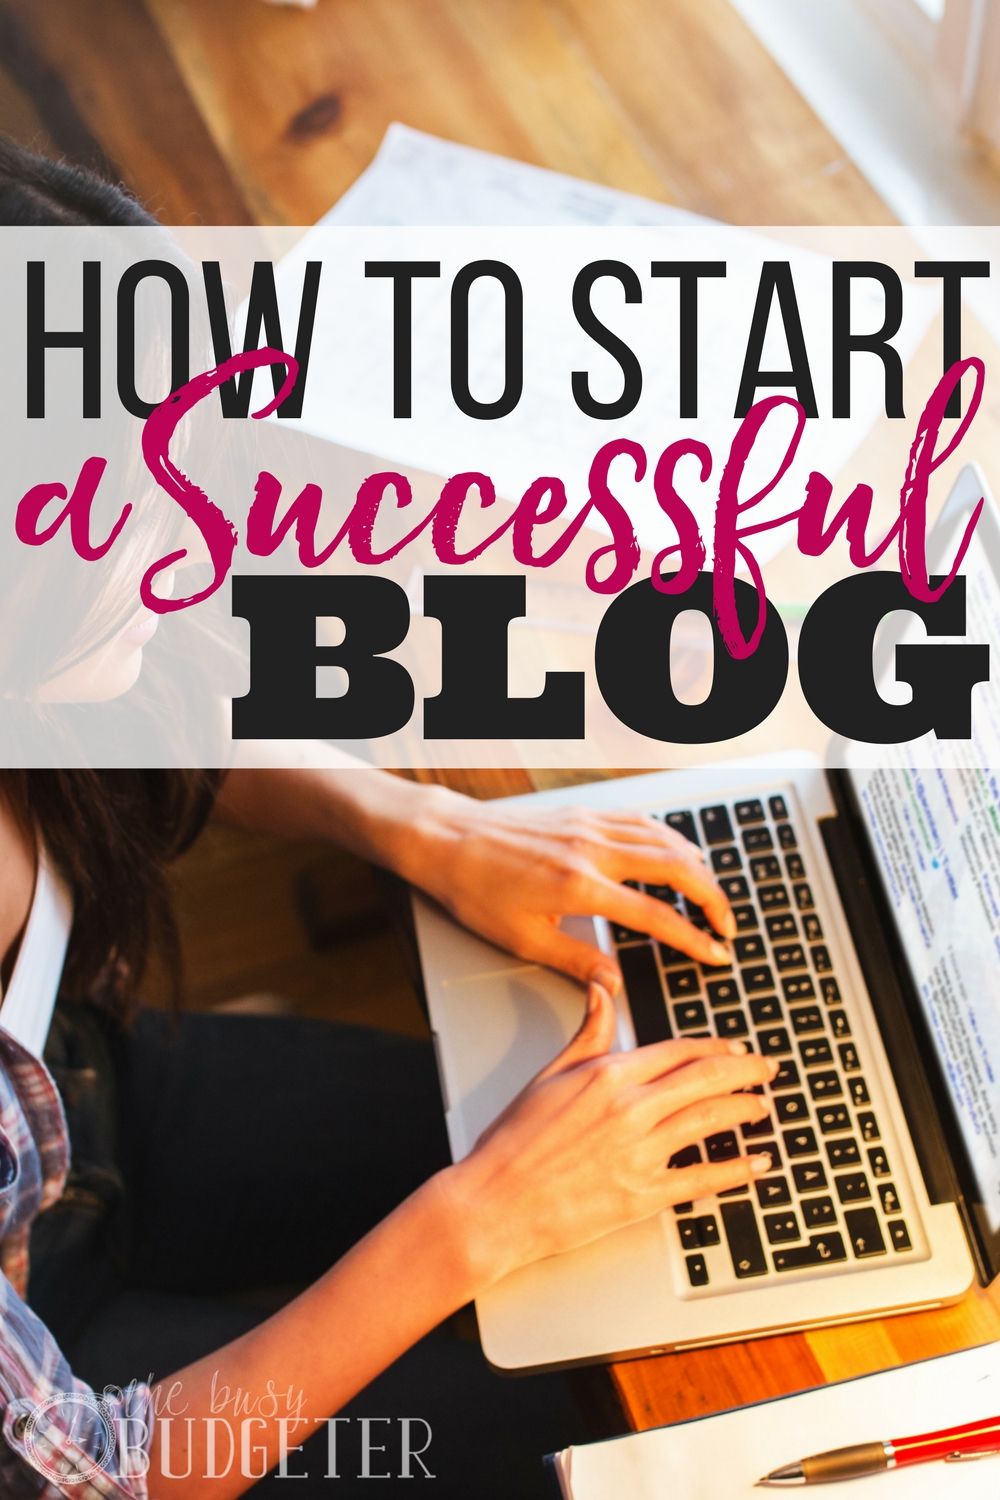 I've always wanted to learn how to start a successful blog and this article walked me through EXACTLY how to do it. I always thought you had to be super tech-savvy to be a blogger, but it's so much easier than I thought!